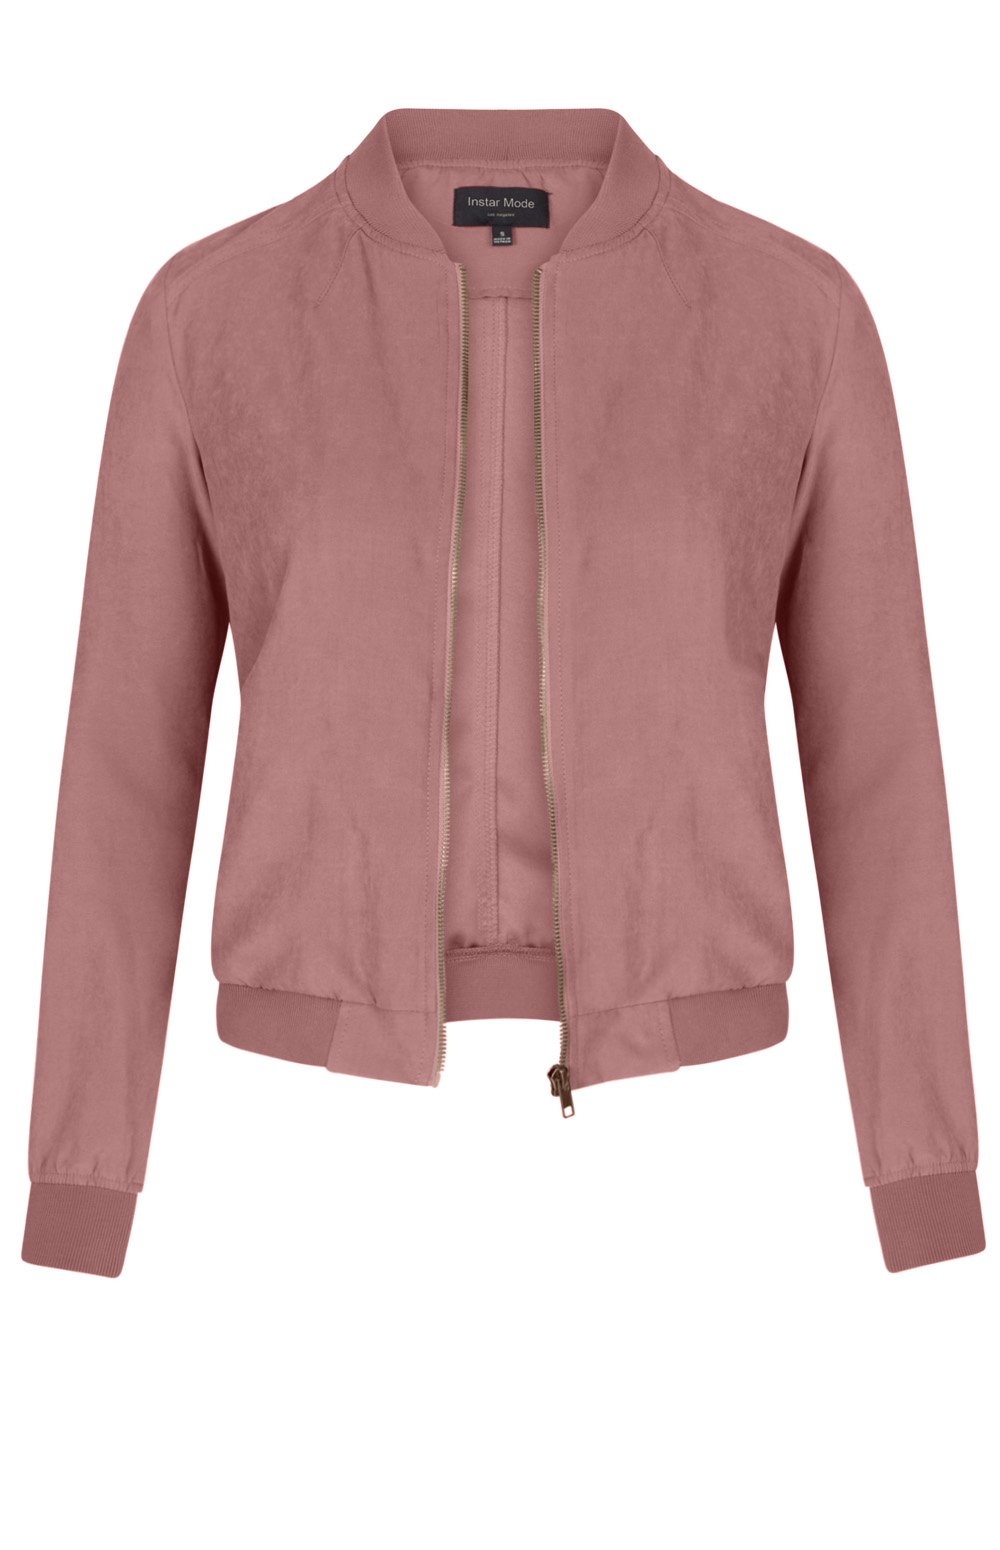 Instar Mode Women's Quilted Classic Solid Zip Up Short Bomber Jacket Padded Coat (JK00515 D/Rose, Medium)